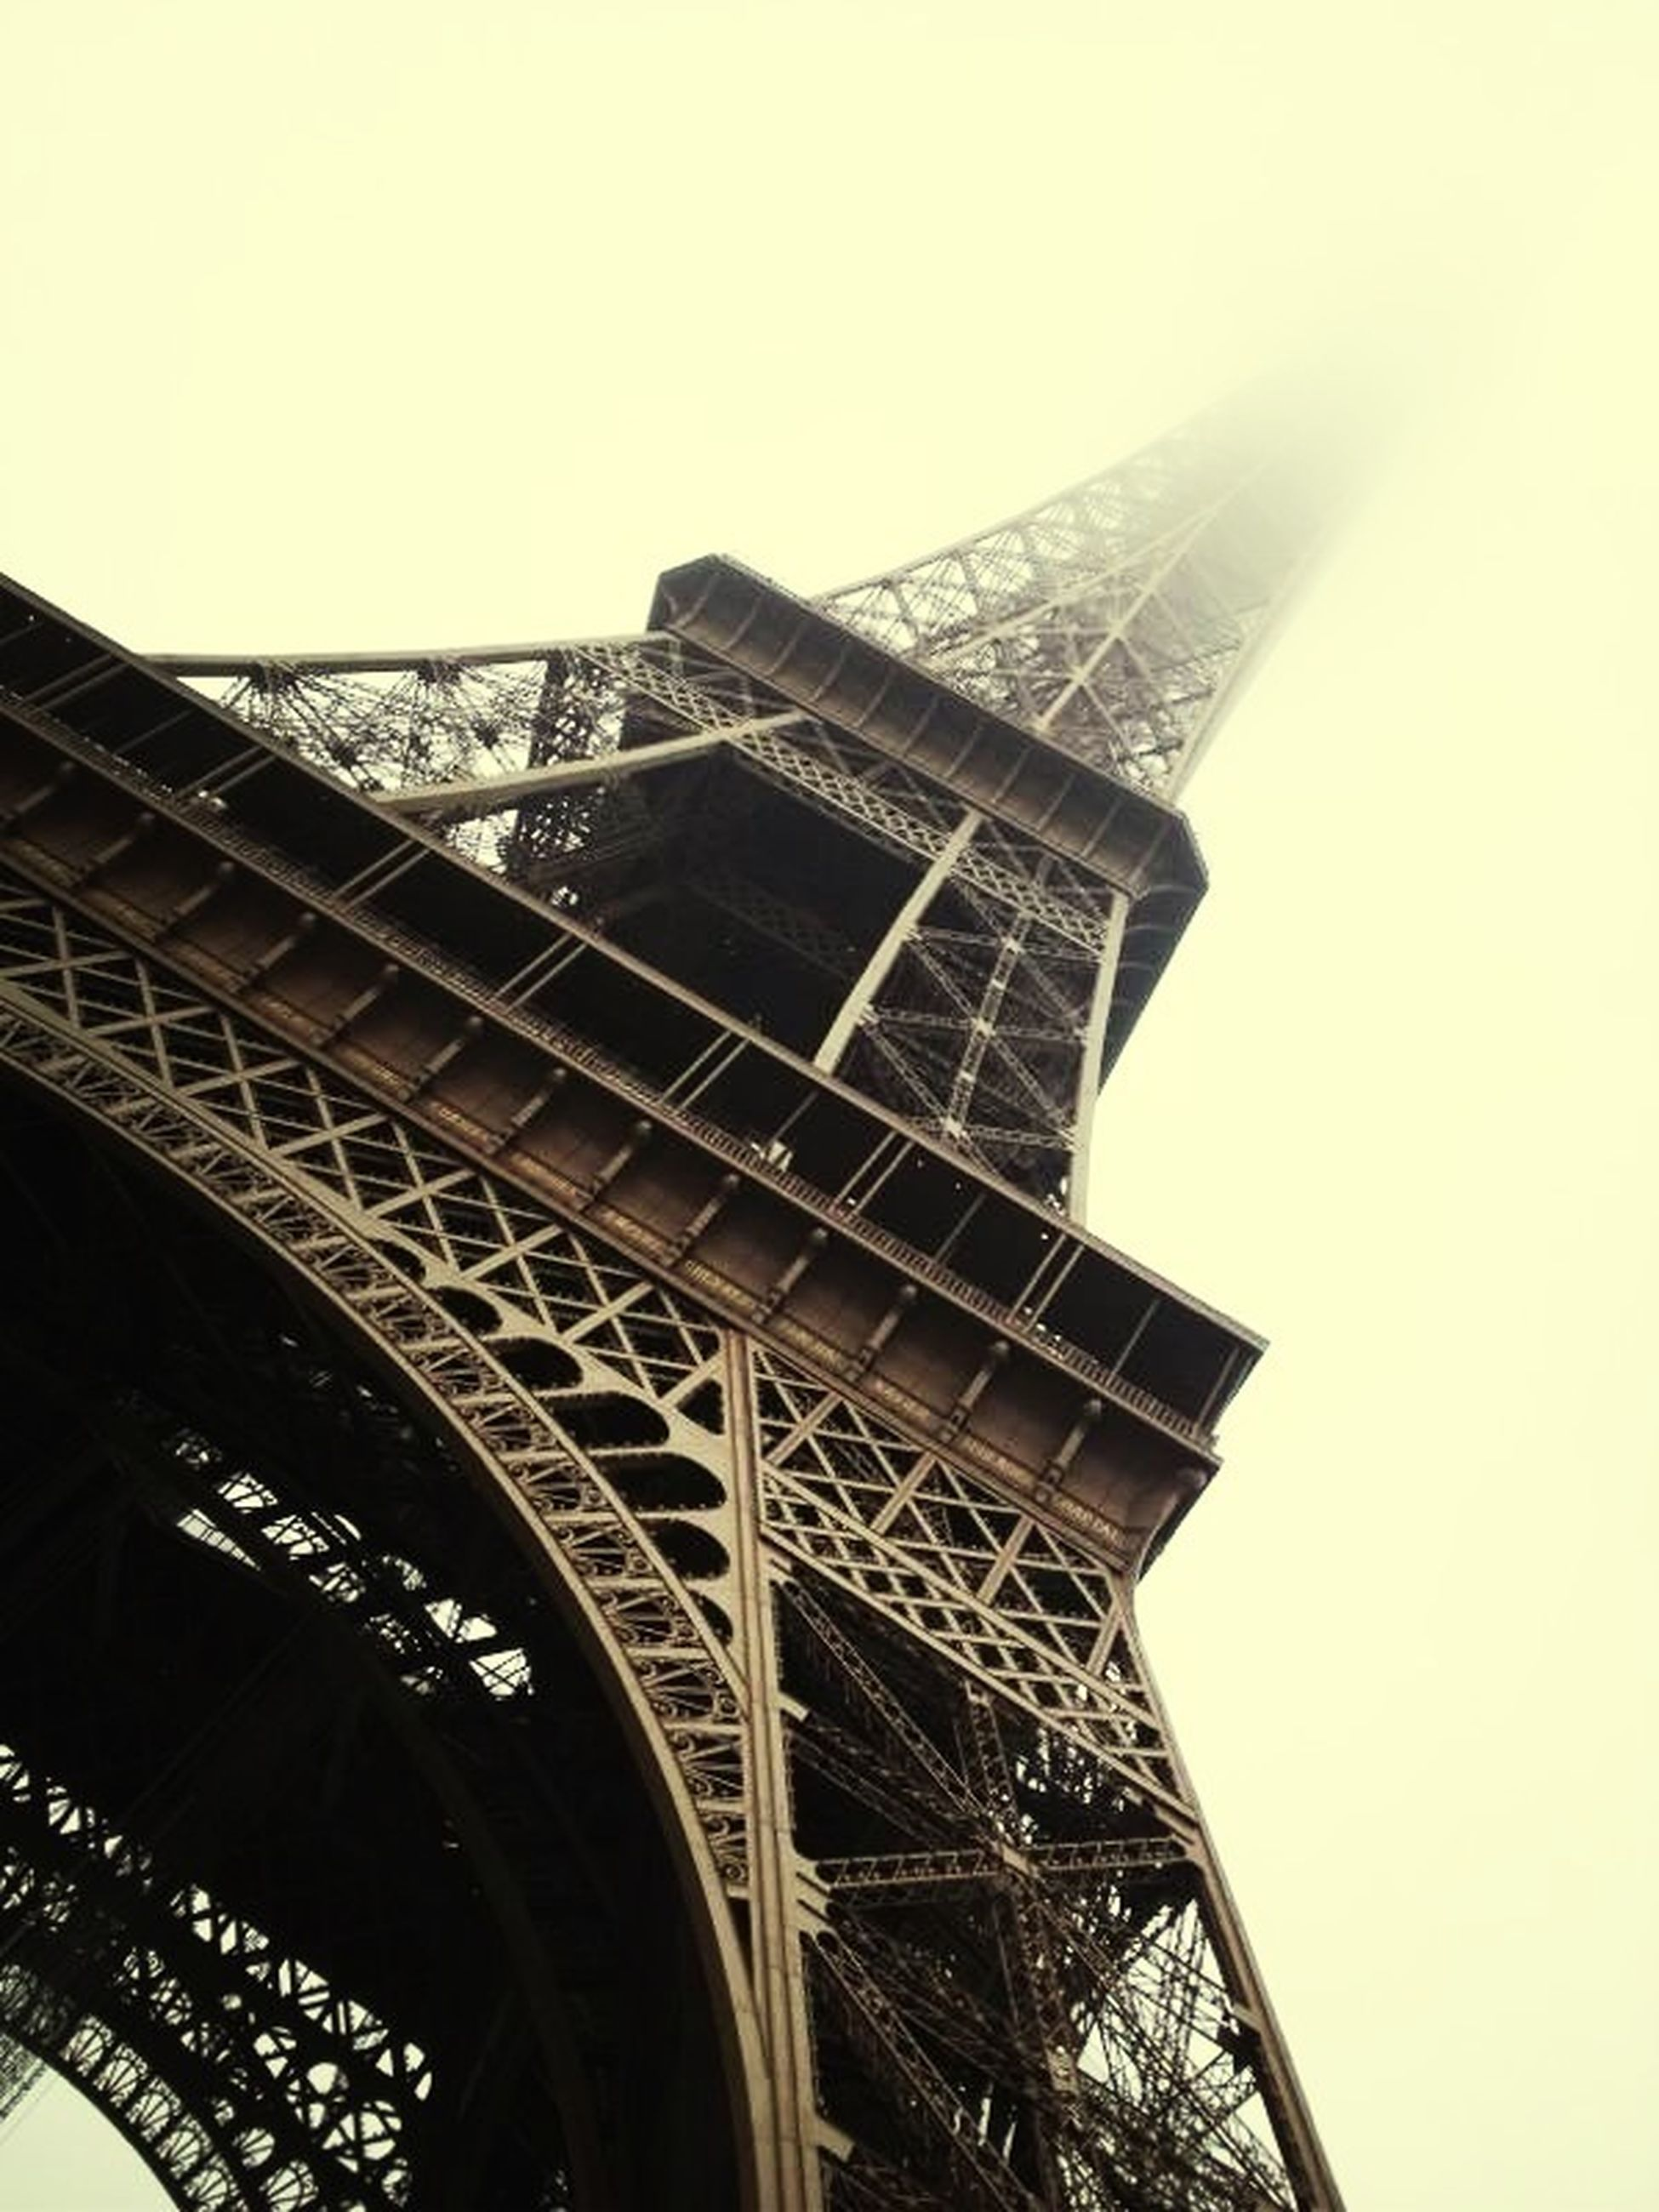 architecture, built structure, low angle view, clear sky, building exterior, tower, famous place, travel destinations, eiffel tower, international landmark, capital cities, history, culture, tall - high, tourism, metal, travel, city, architectural feature, sky